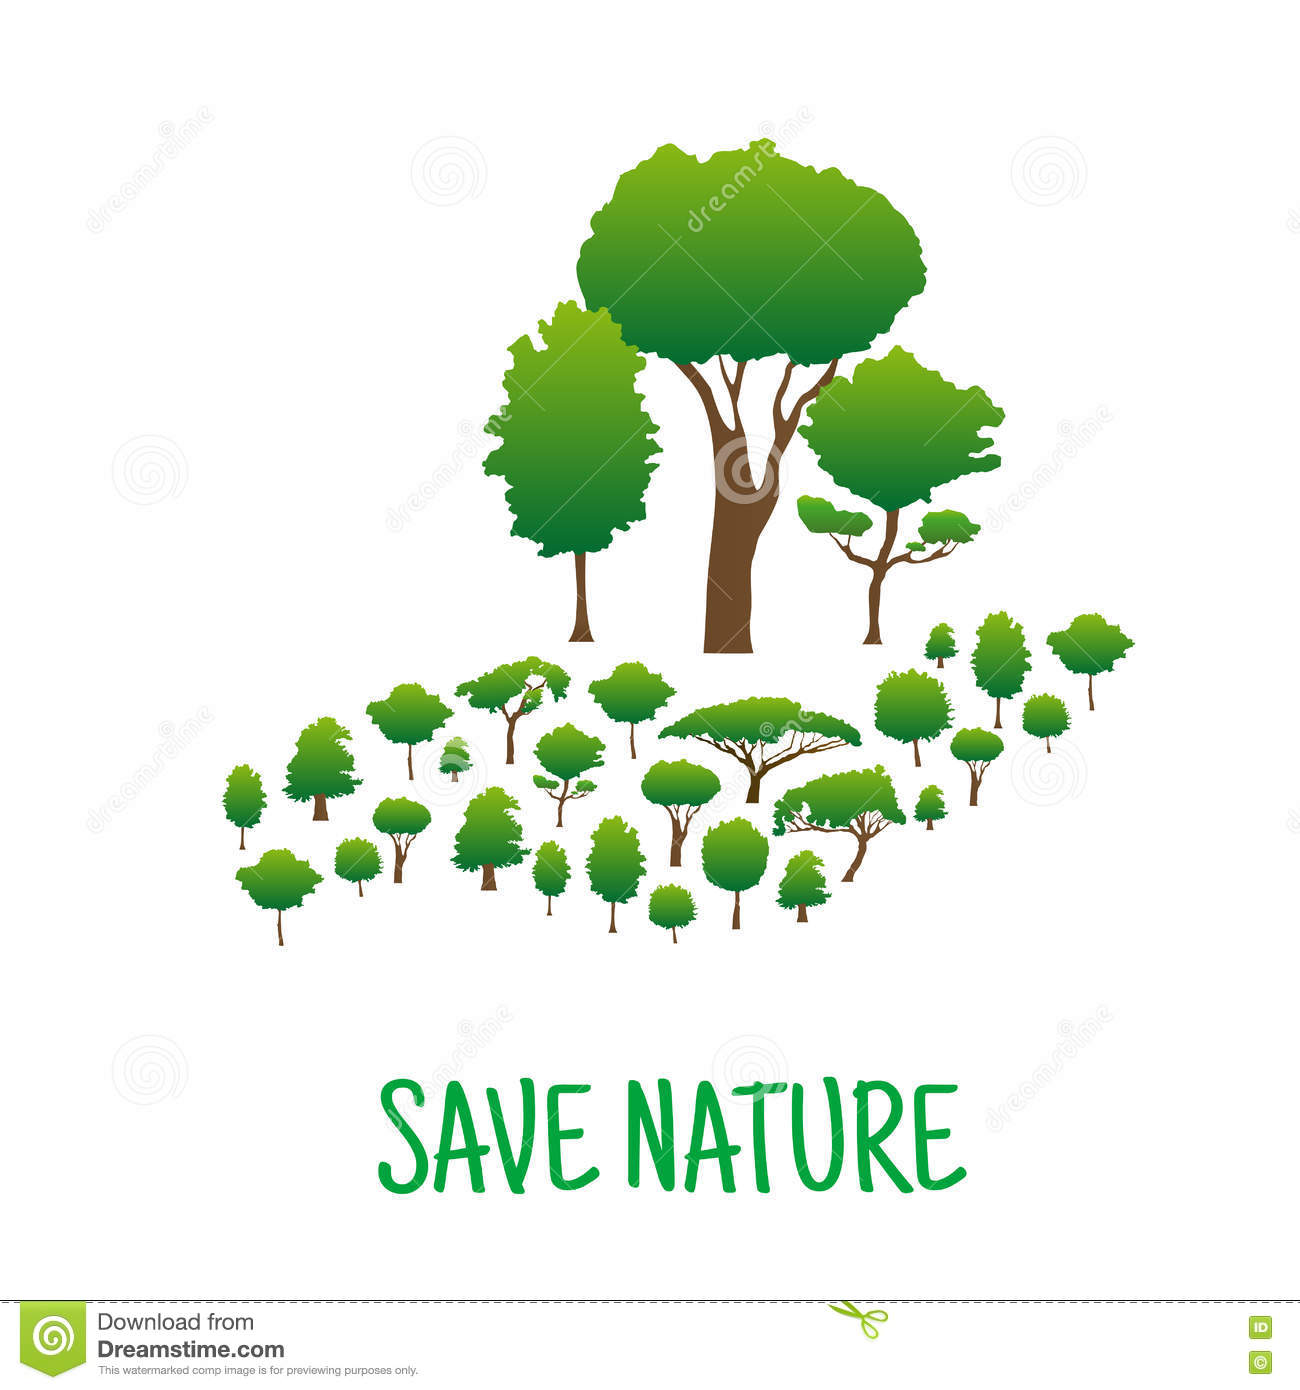 save nature save environment 100 catchy save environment slogans in this post, we are sharing with you a list of 100+ save environment slogans  save nature and nature will save your life and future  plant trees, save nature, save the world  save tree – save life  join hands to save trees.